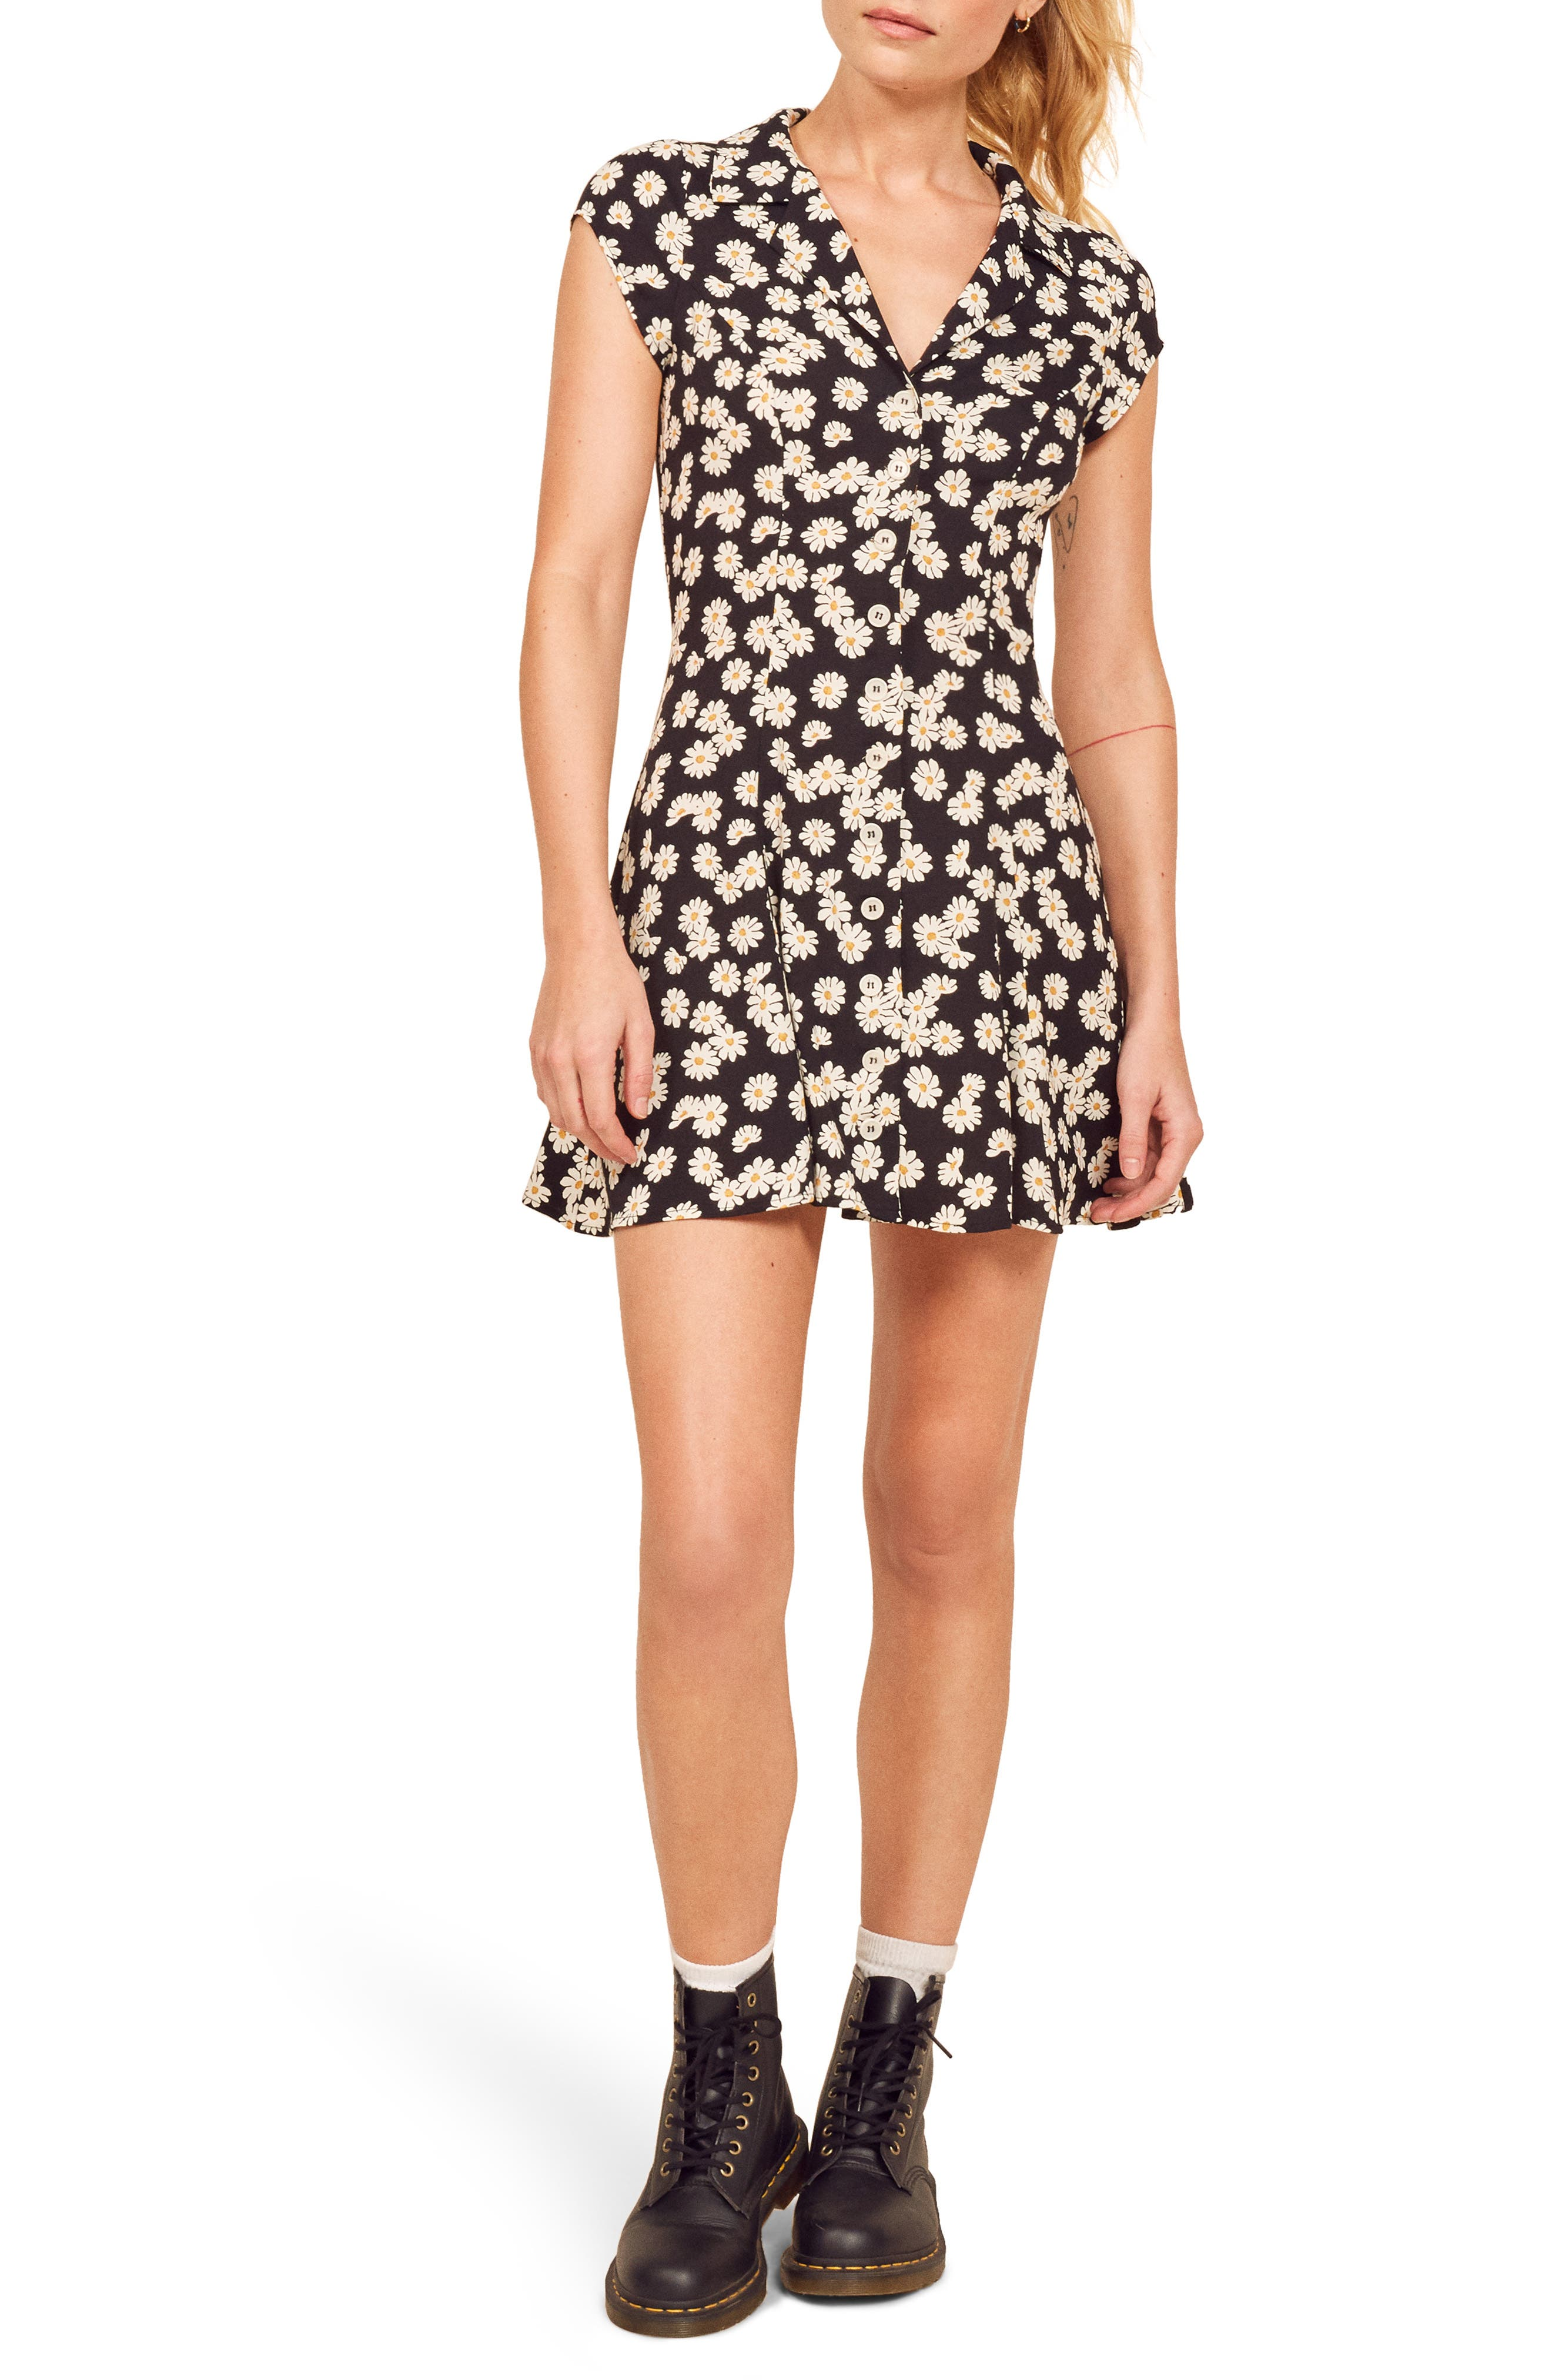 Reformation Concord Button Front Dress, Black